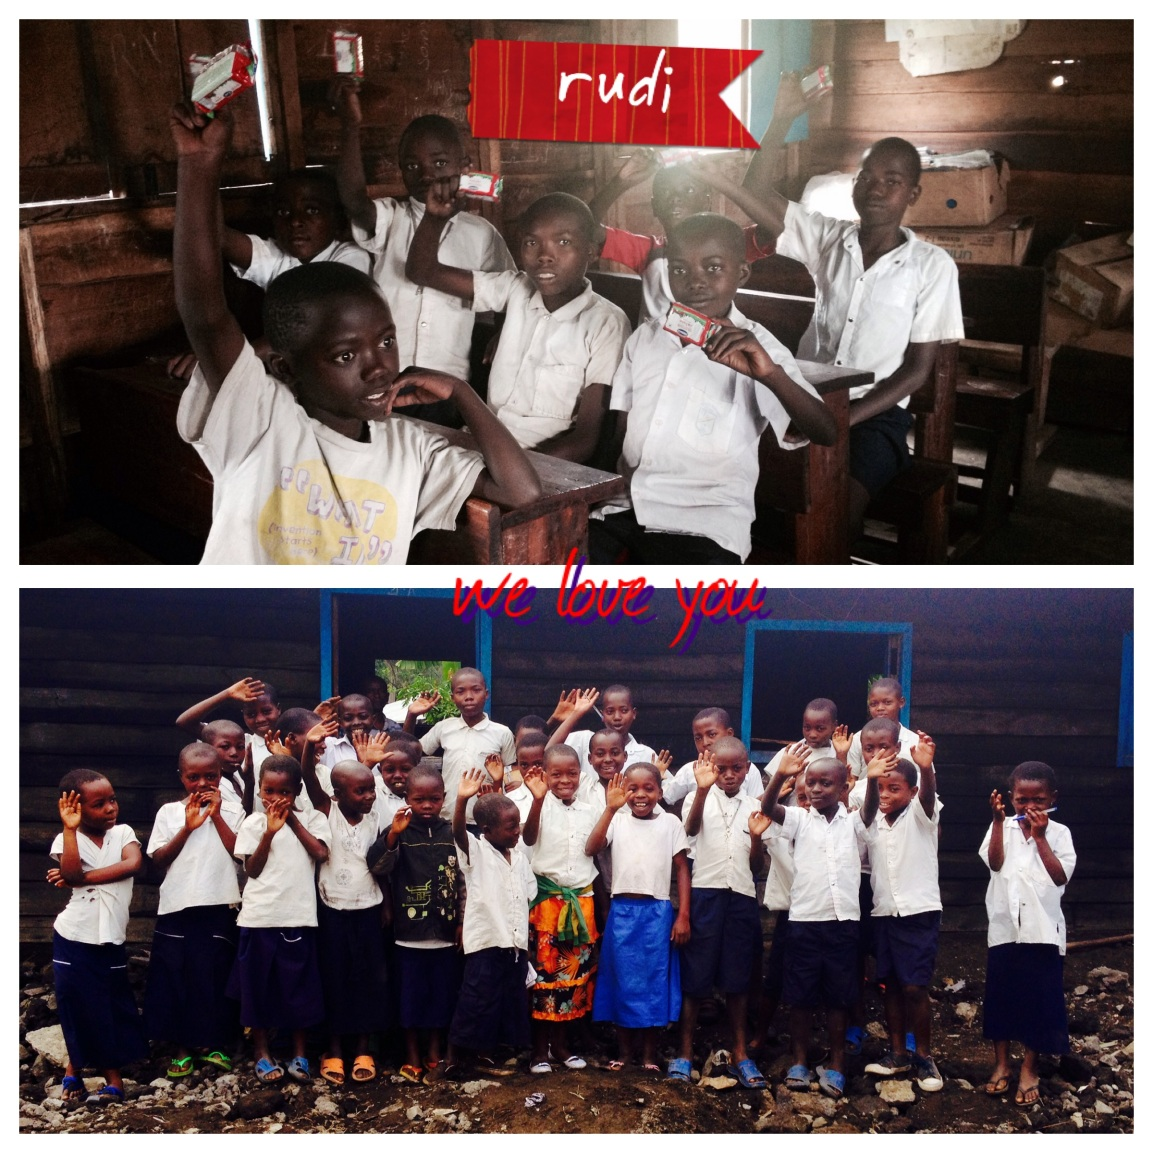 The Children from Rudi Education say thank you!